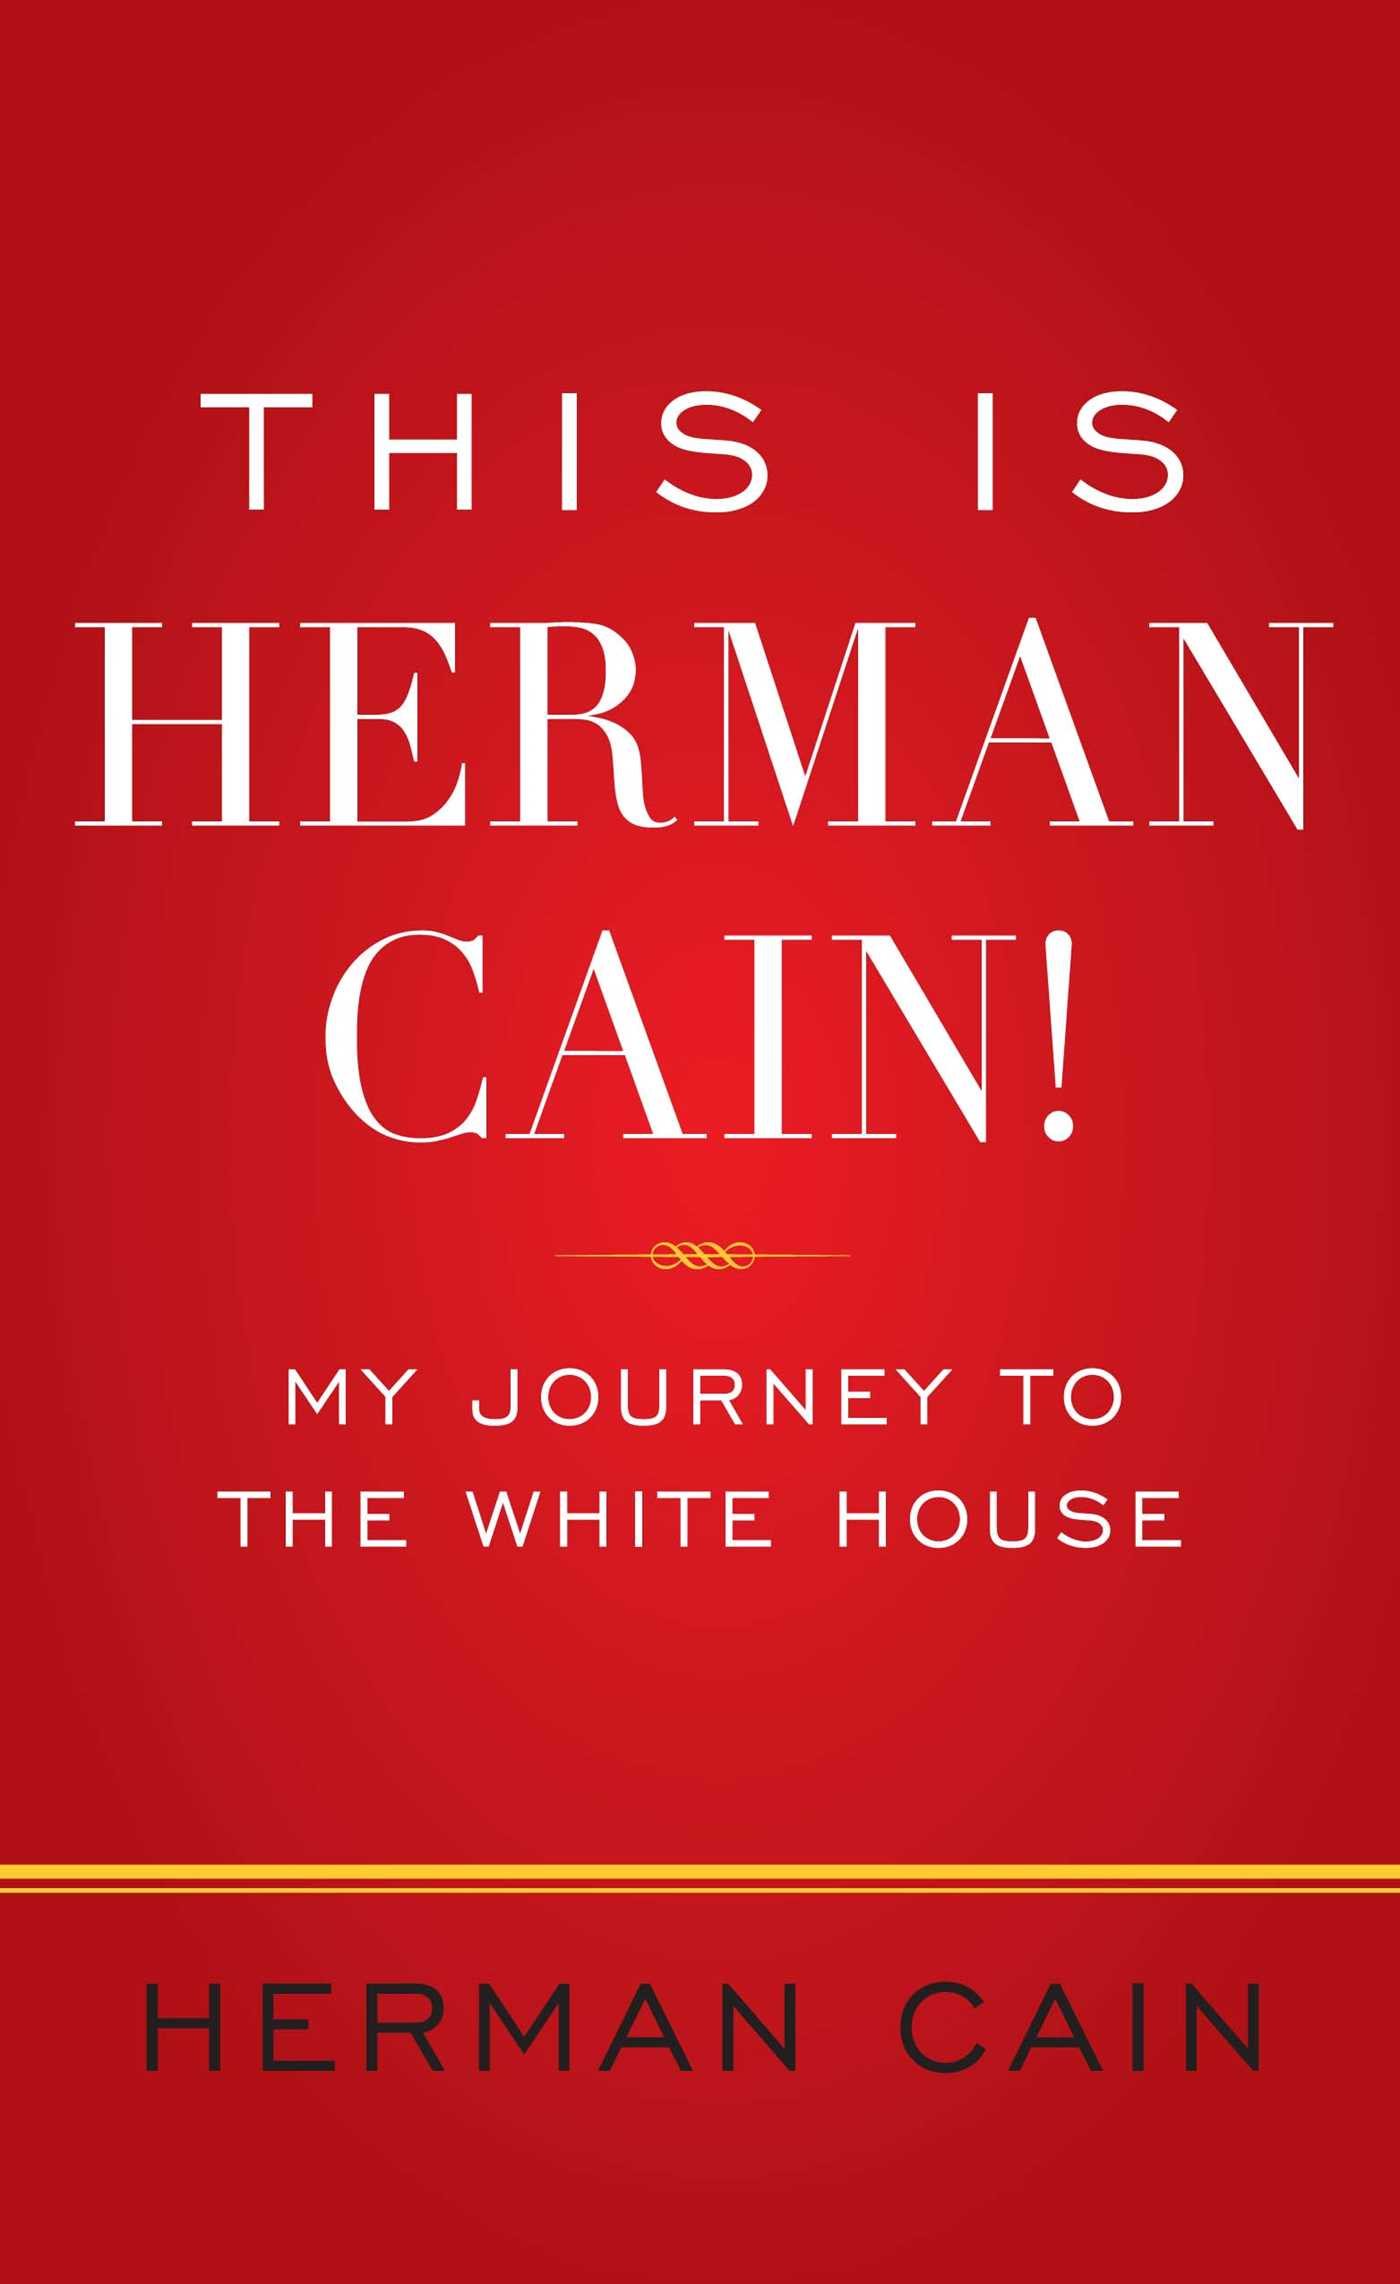 This is herman cain 9781451666151 hr